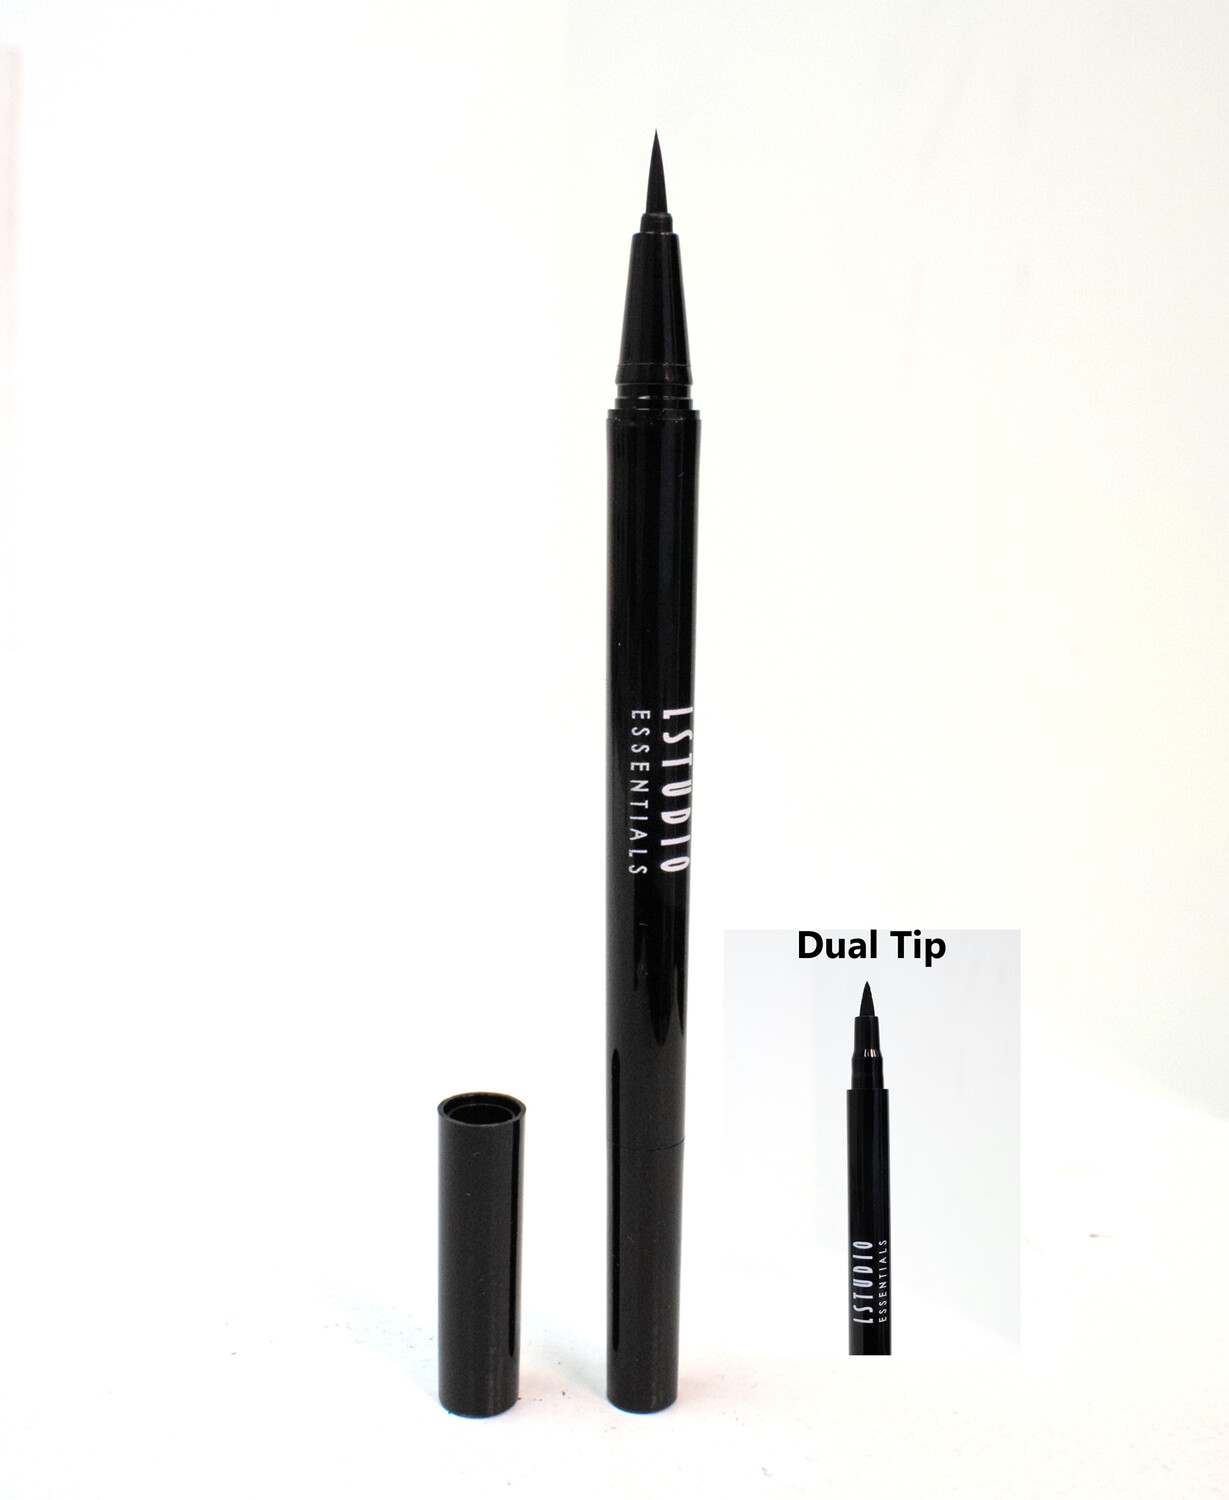 Dual Tip Eye Liner Pen